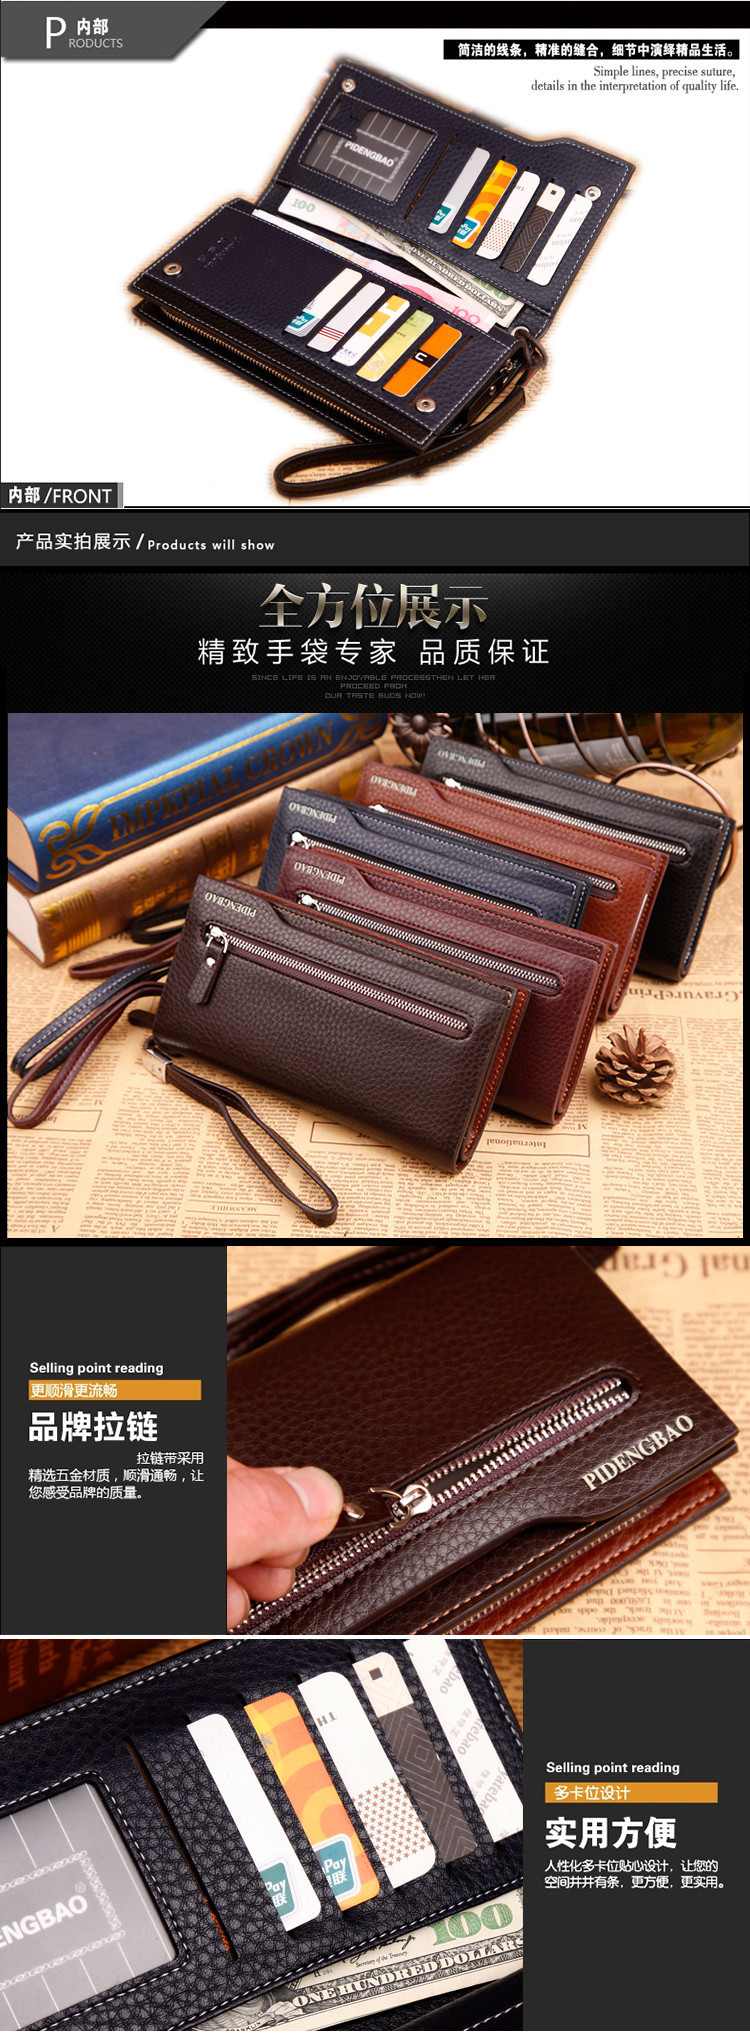 New 2015 Fashion Men Wallets High Quality Leather Wallet Multifunctional Men Purse Brand Men Clutch Handbags Large Capacity